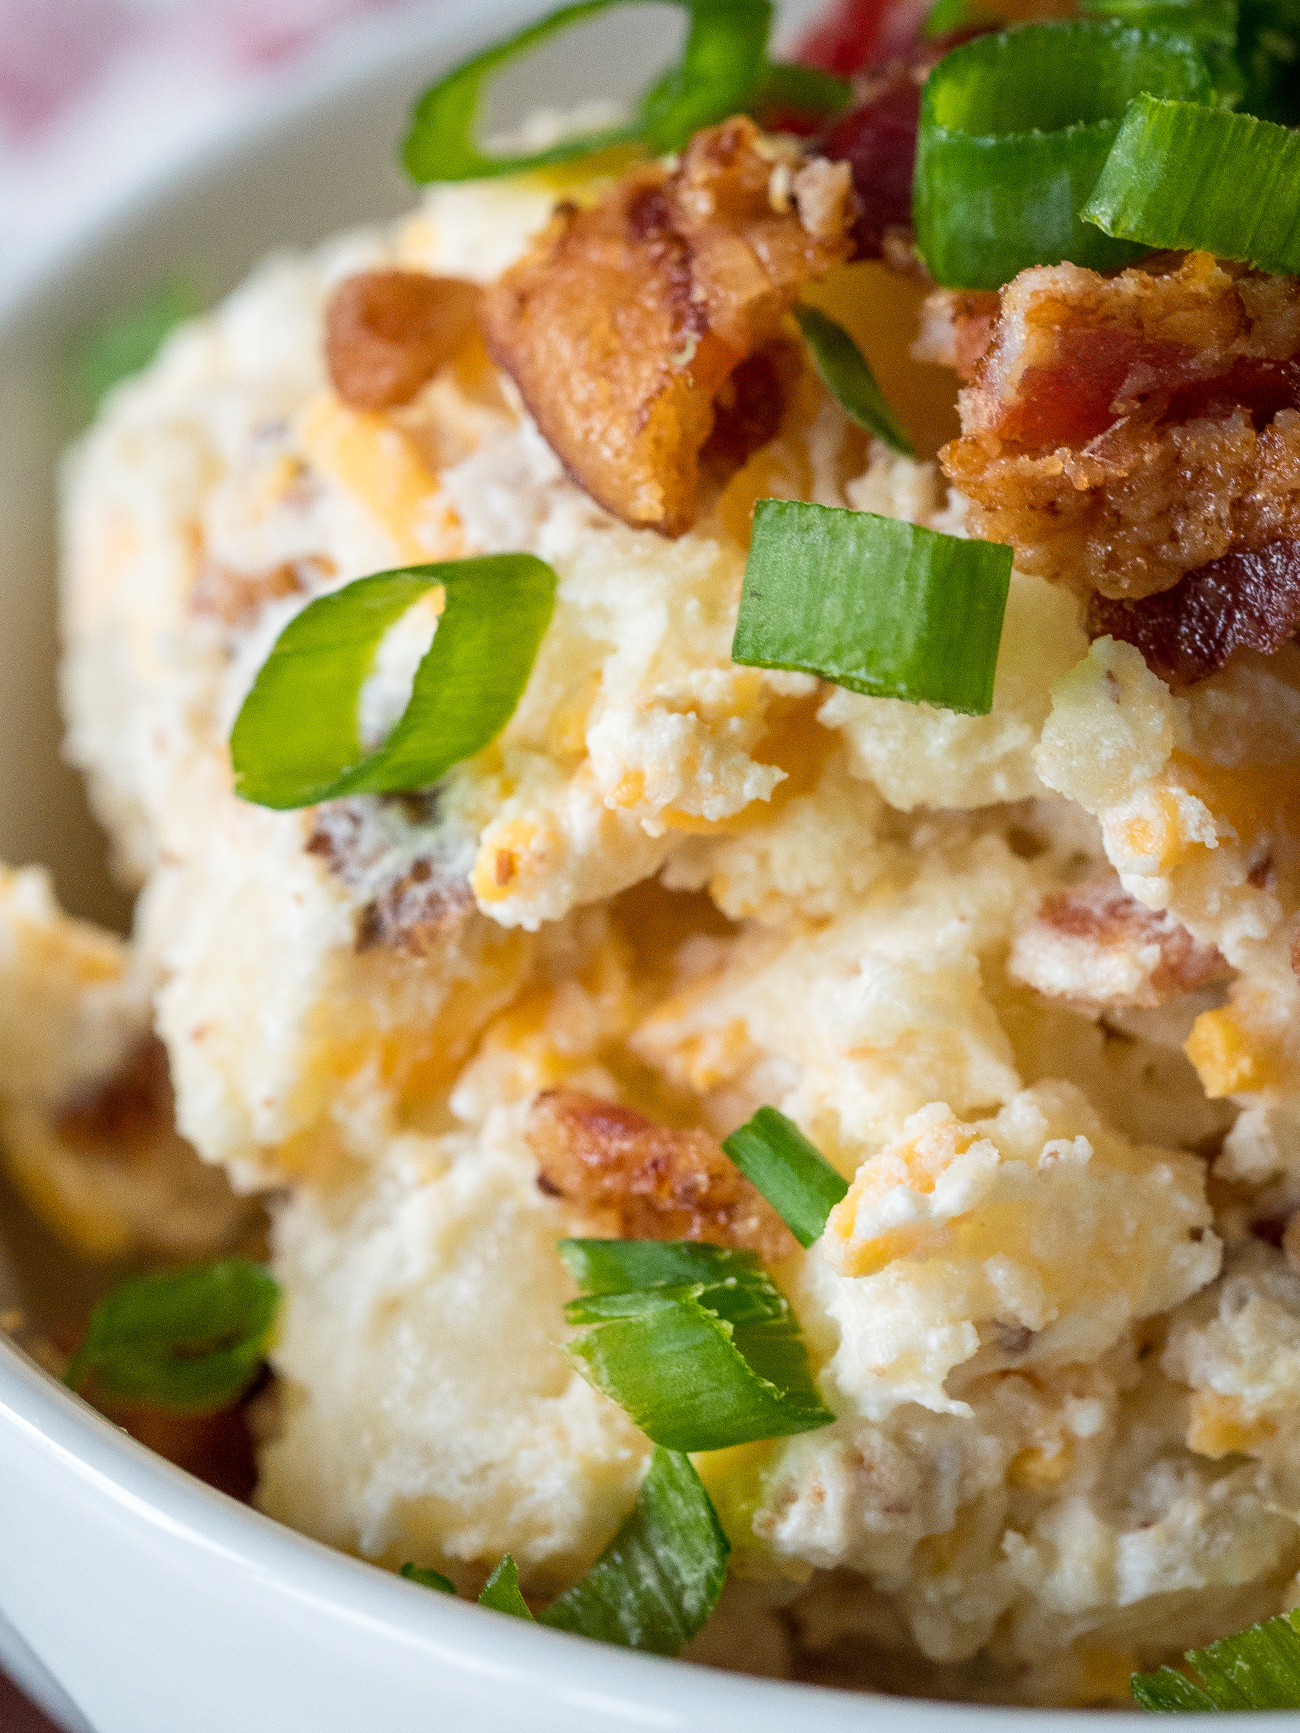 Loaded Baked Potato Salad Vertical 1